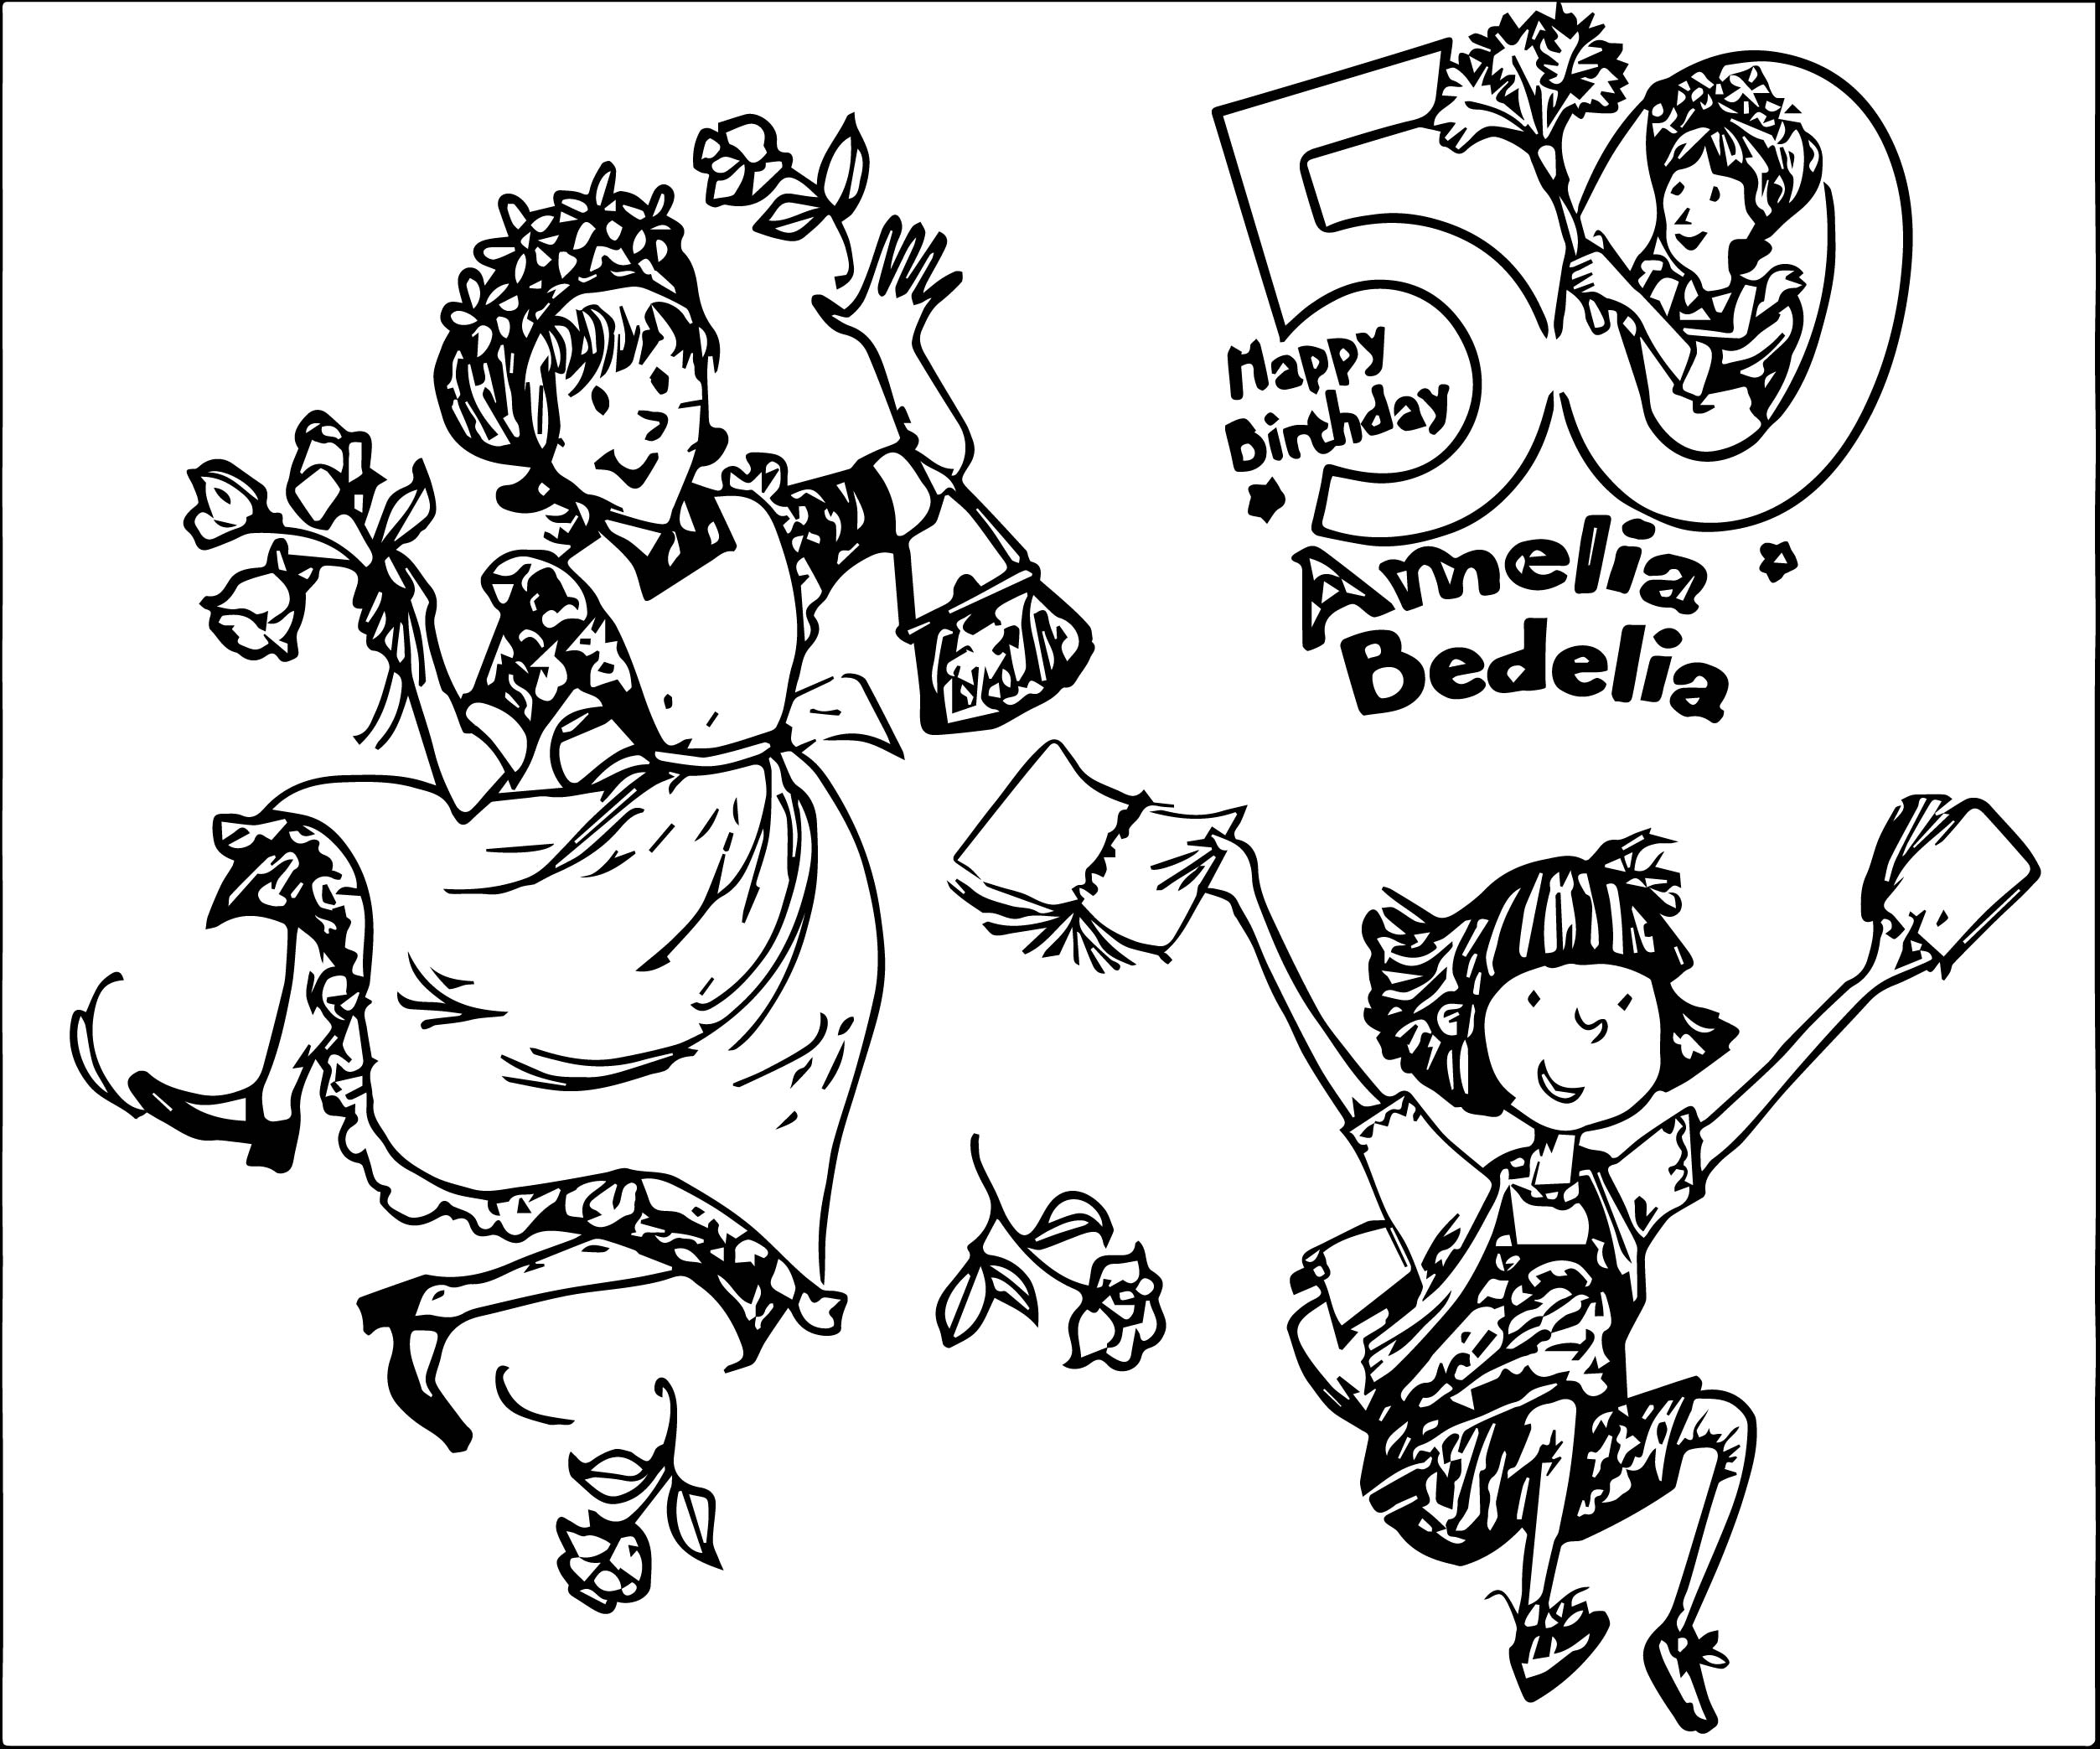 amelia bedelia coloring pages images for adults | Amelia Bedelia Happy Birthday Coloring Page ...